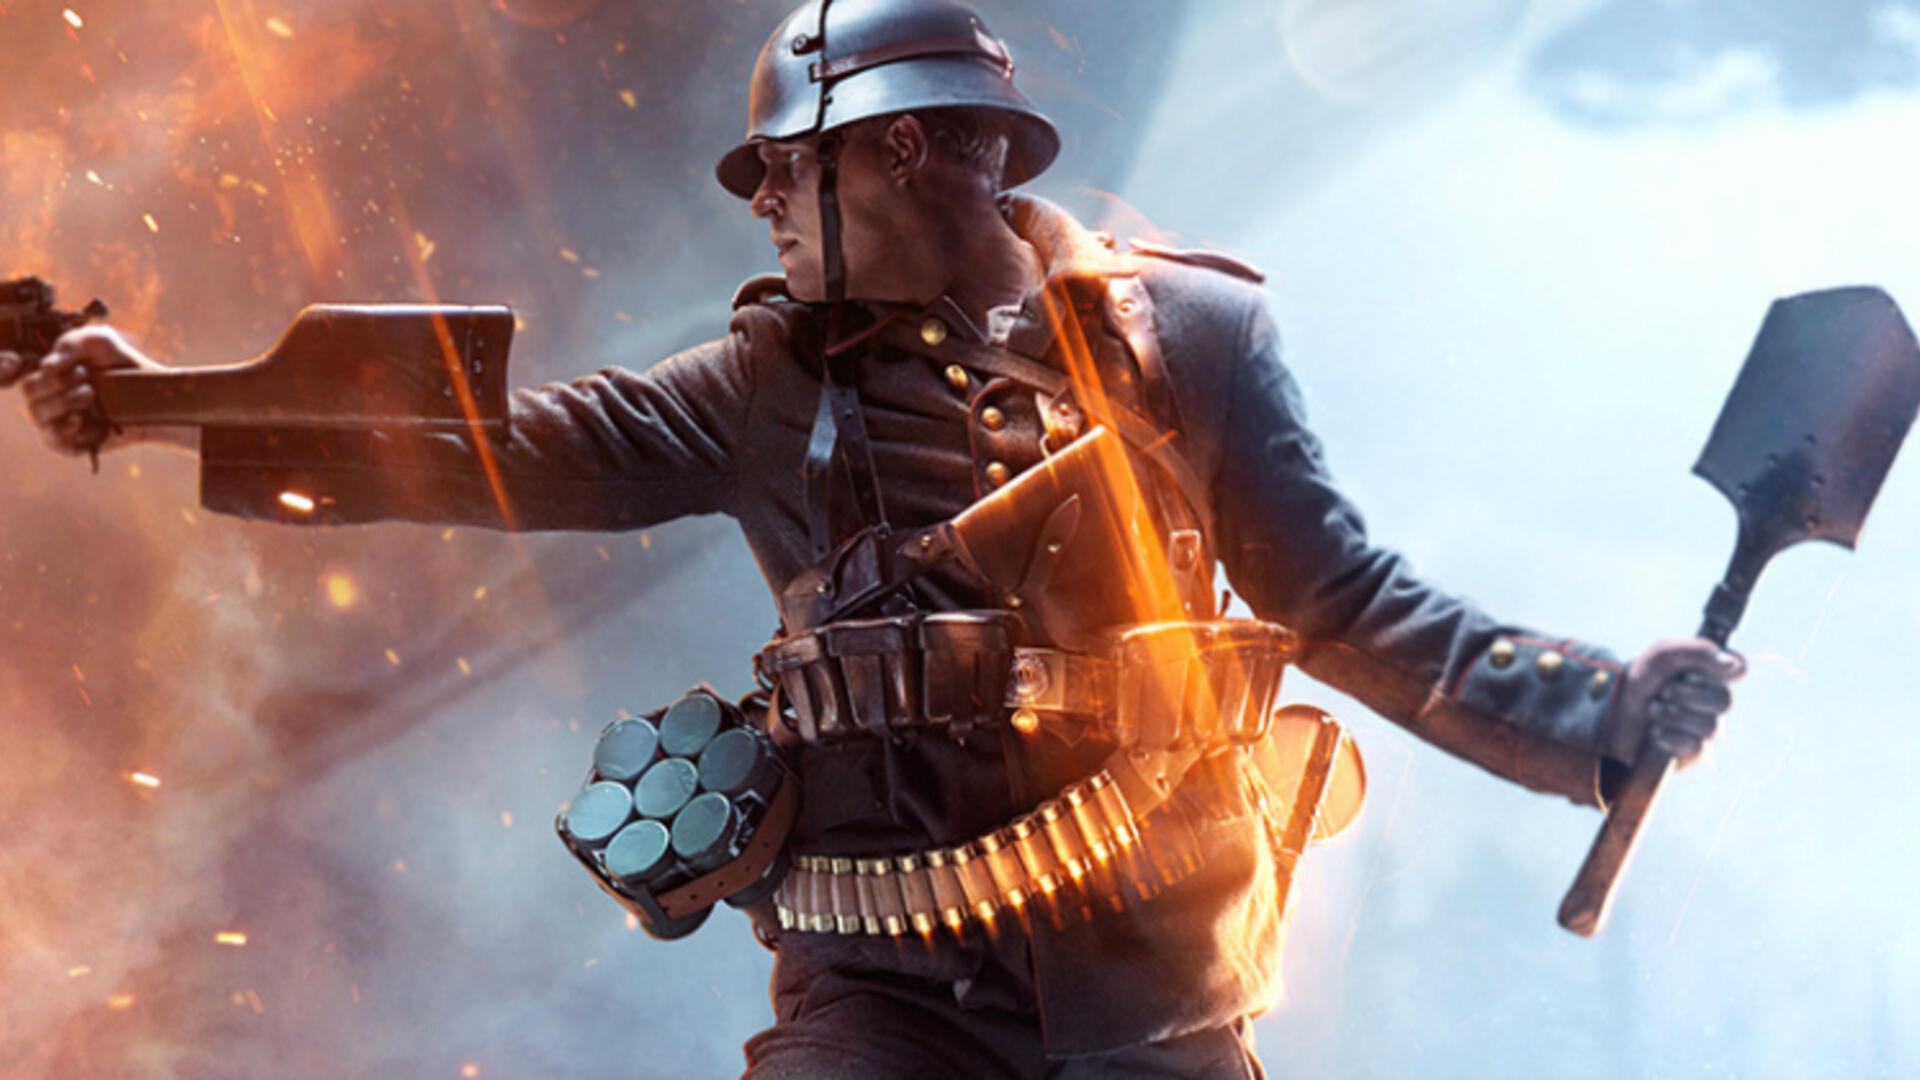 Battlefield 1 Summer Update Patch Notes, Adds Xbox One X 4K Support